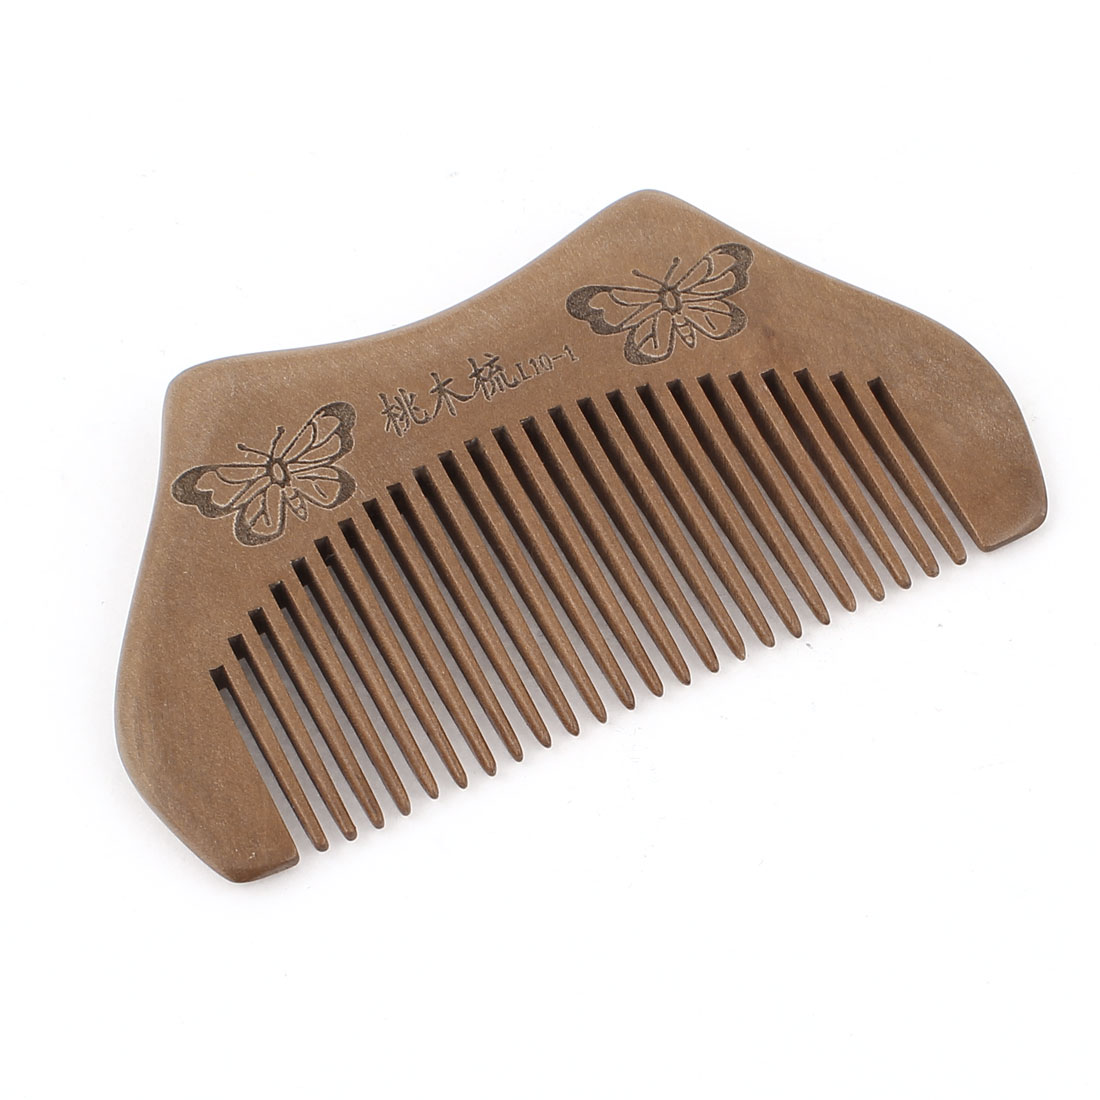 "Portable Wooden Butterfly Pattern Hair Care Hand Craft Comb 3.7"" Length"